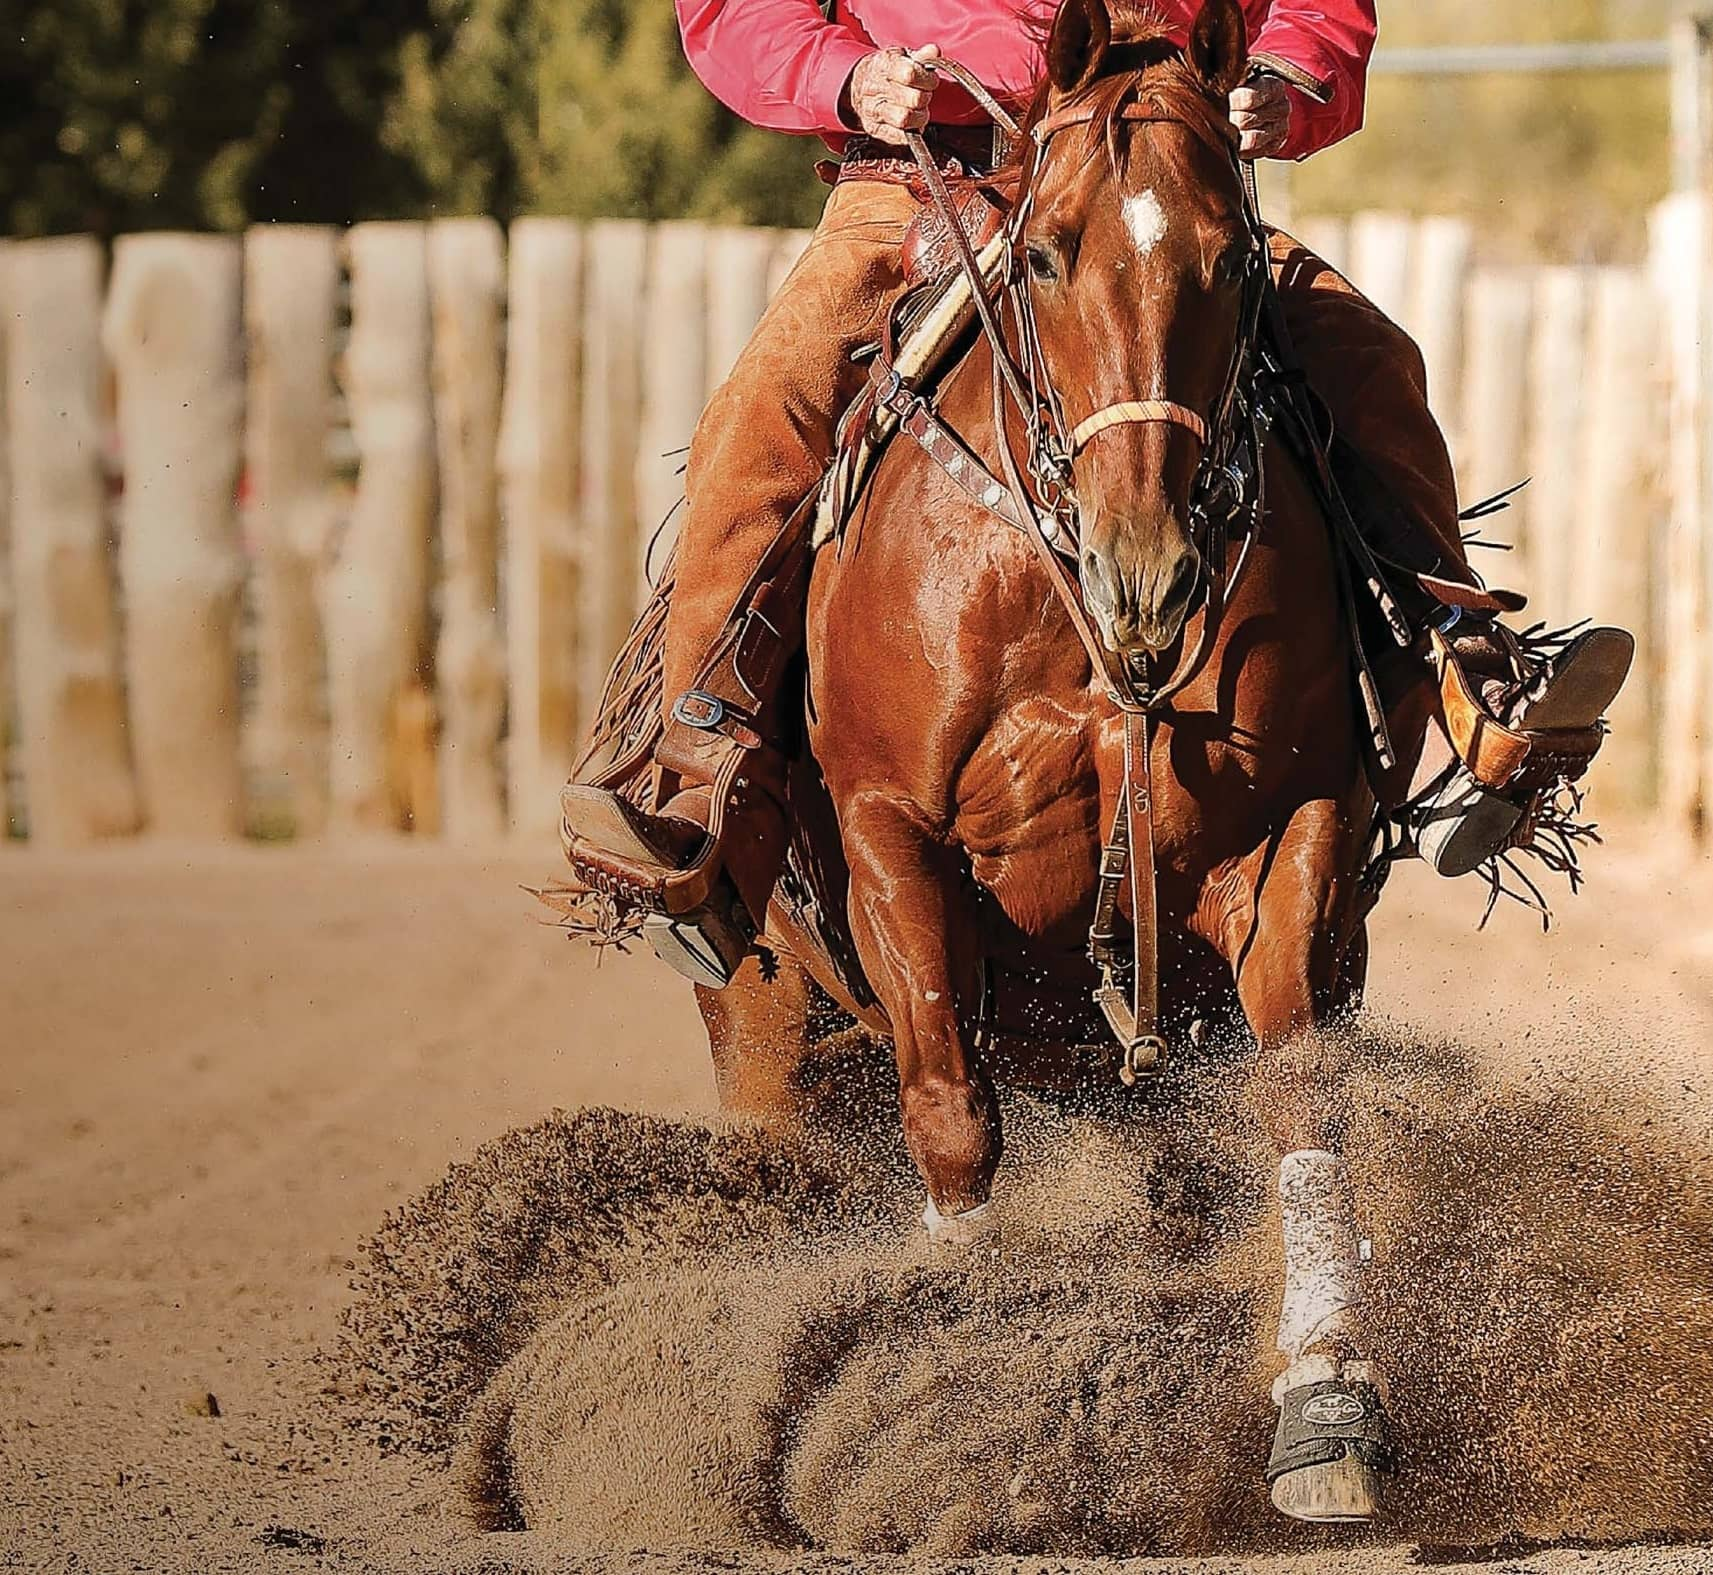 5 INESCAPABLE ELEMENTS OF A WELL-TRAINED HORSE